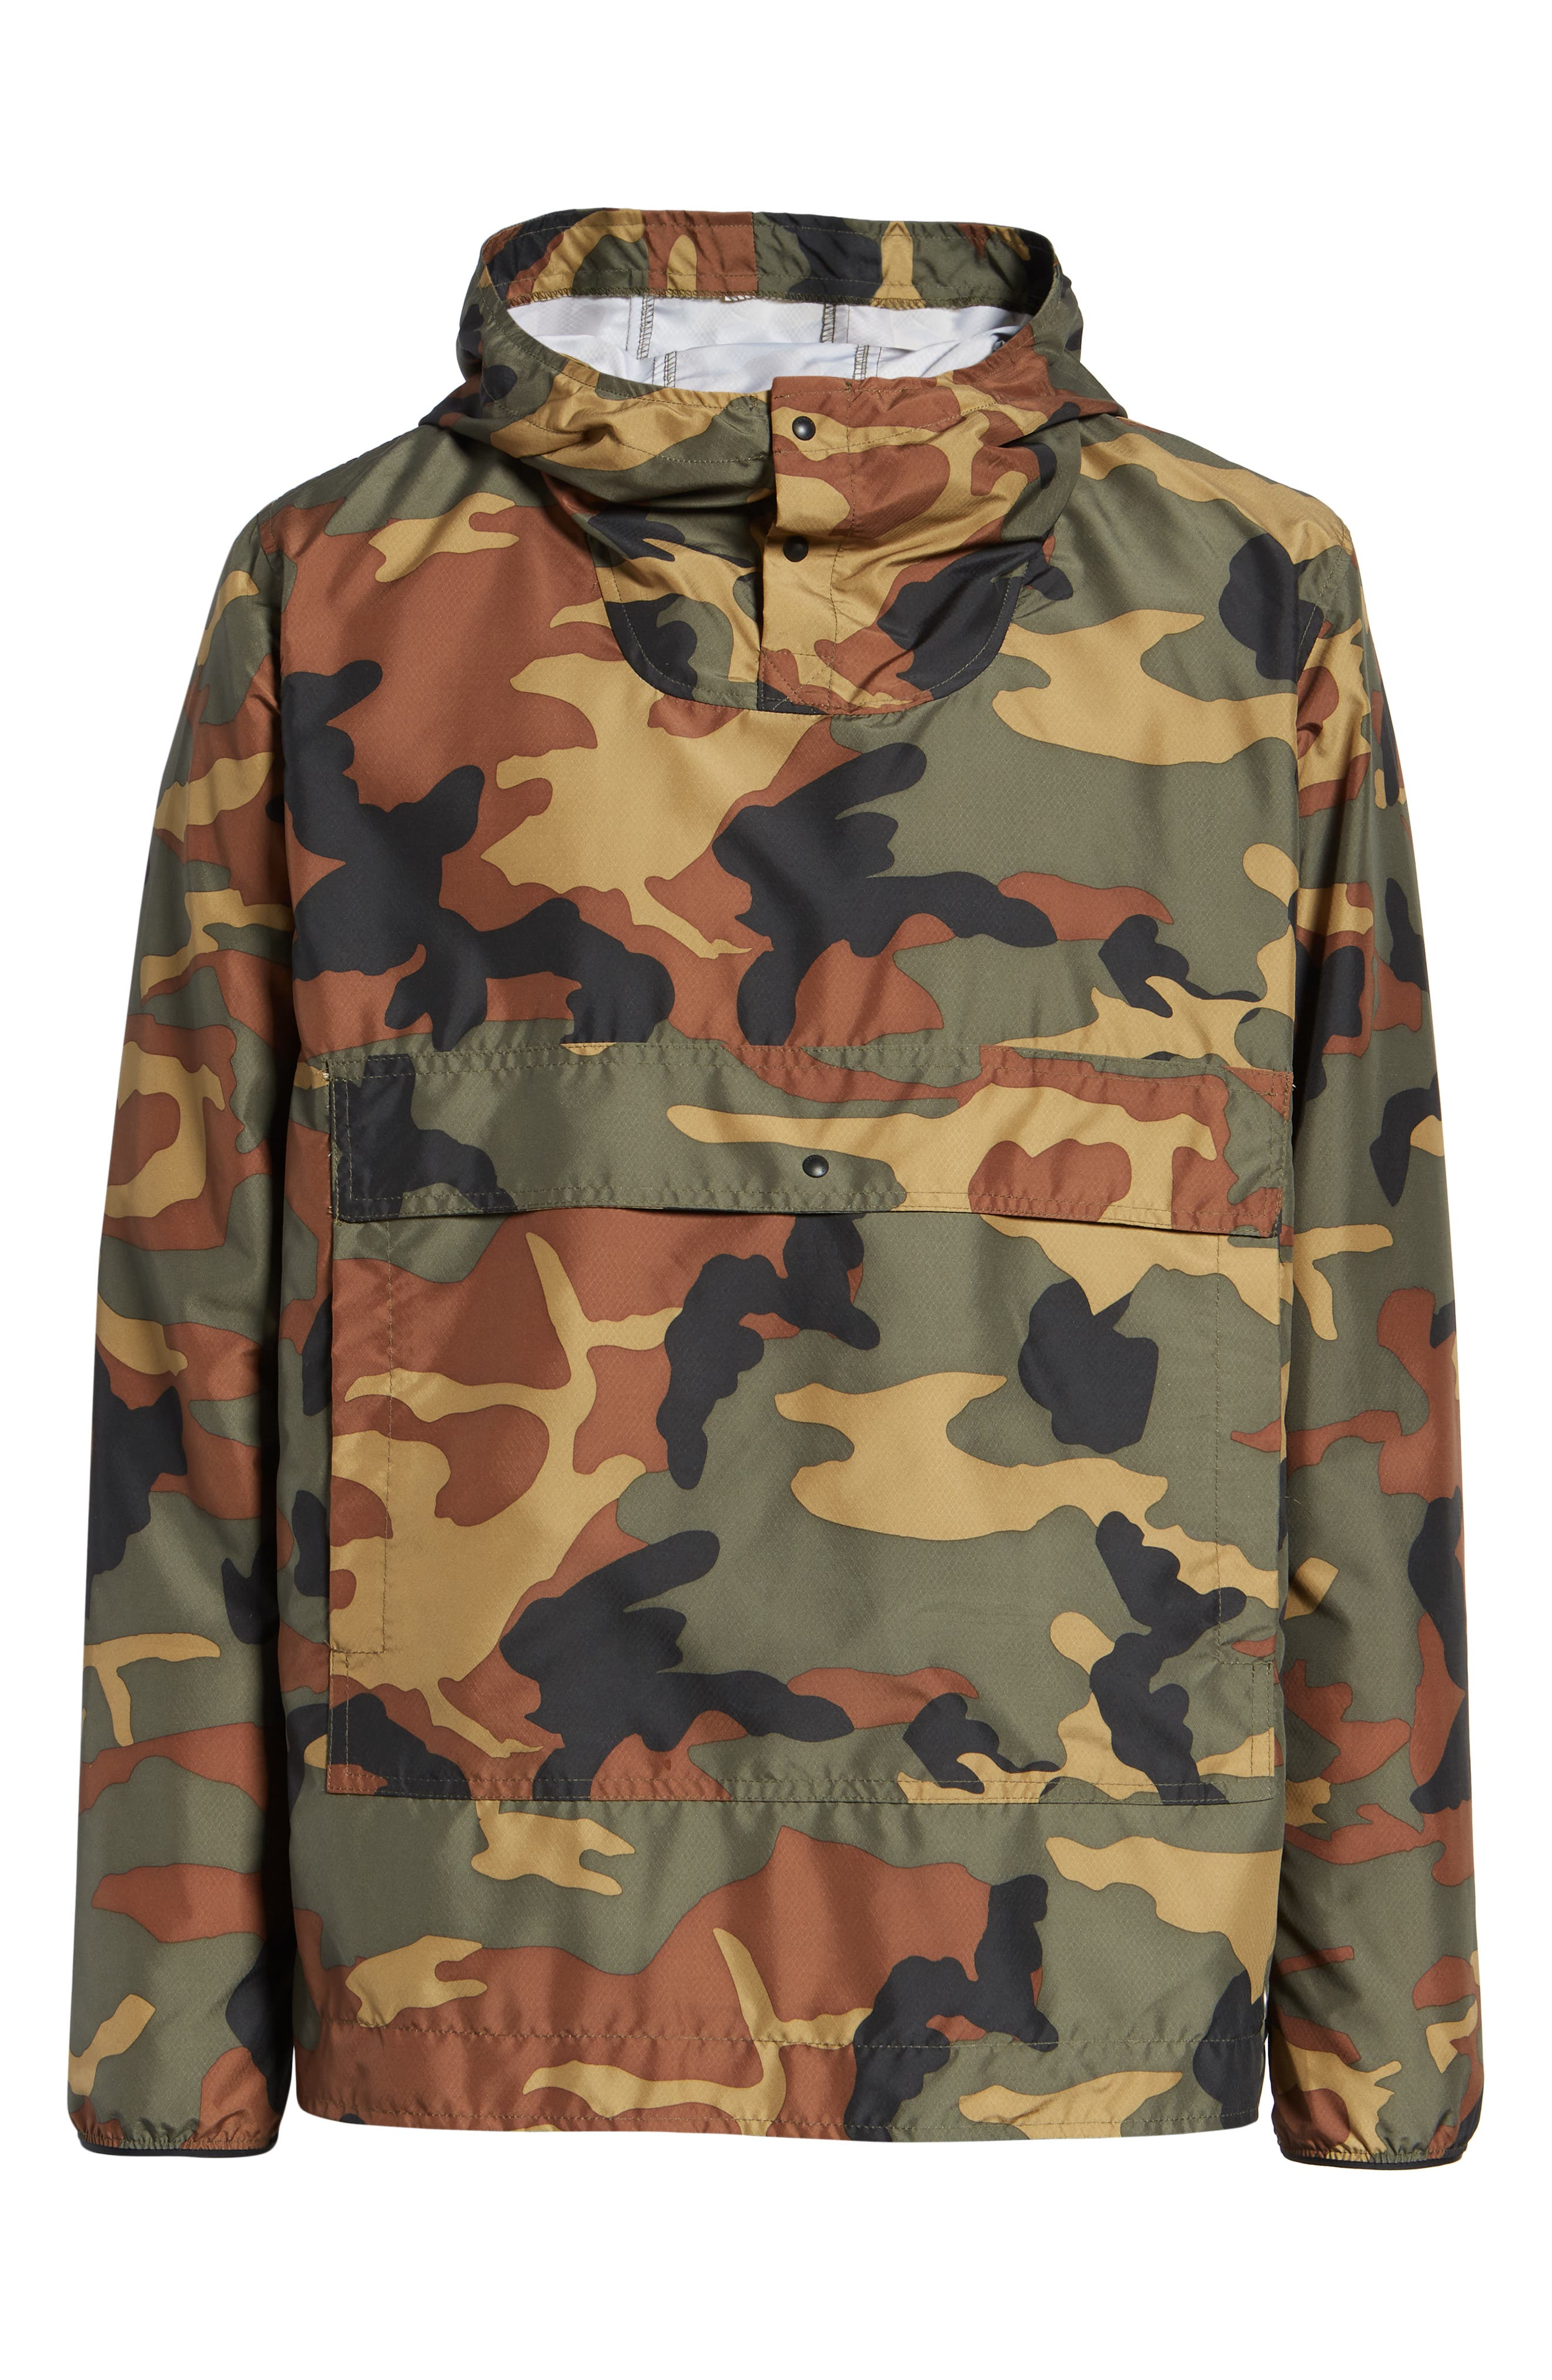 Voyage Anorak,                             Alternate thumbnail 4, color,                             WOODLAND CAMO